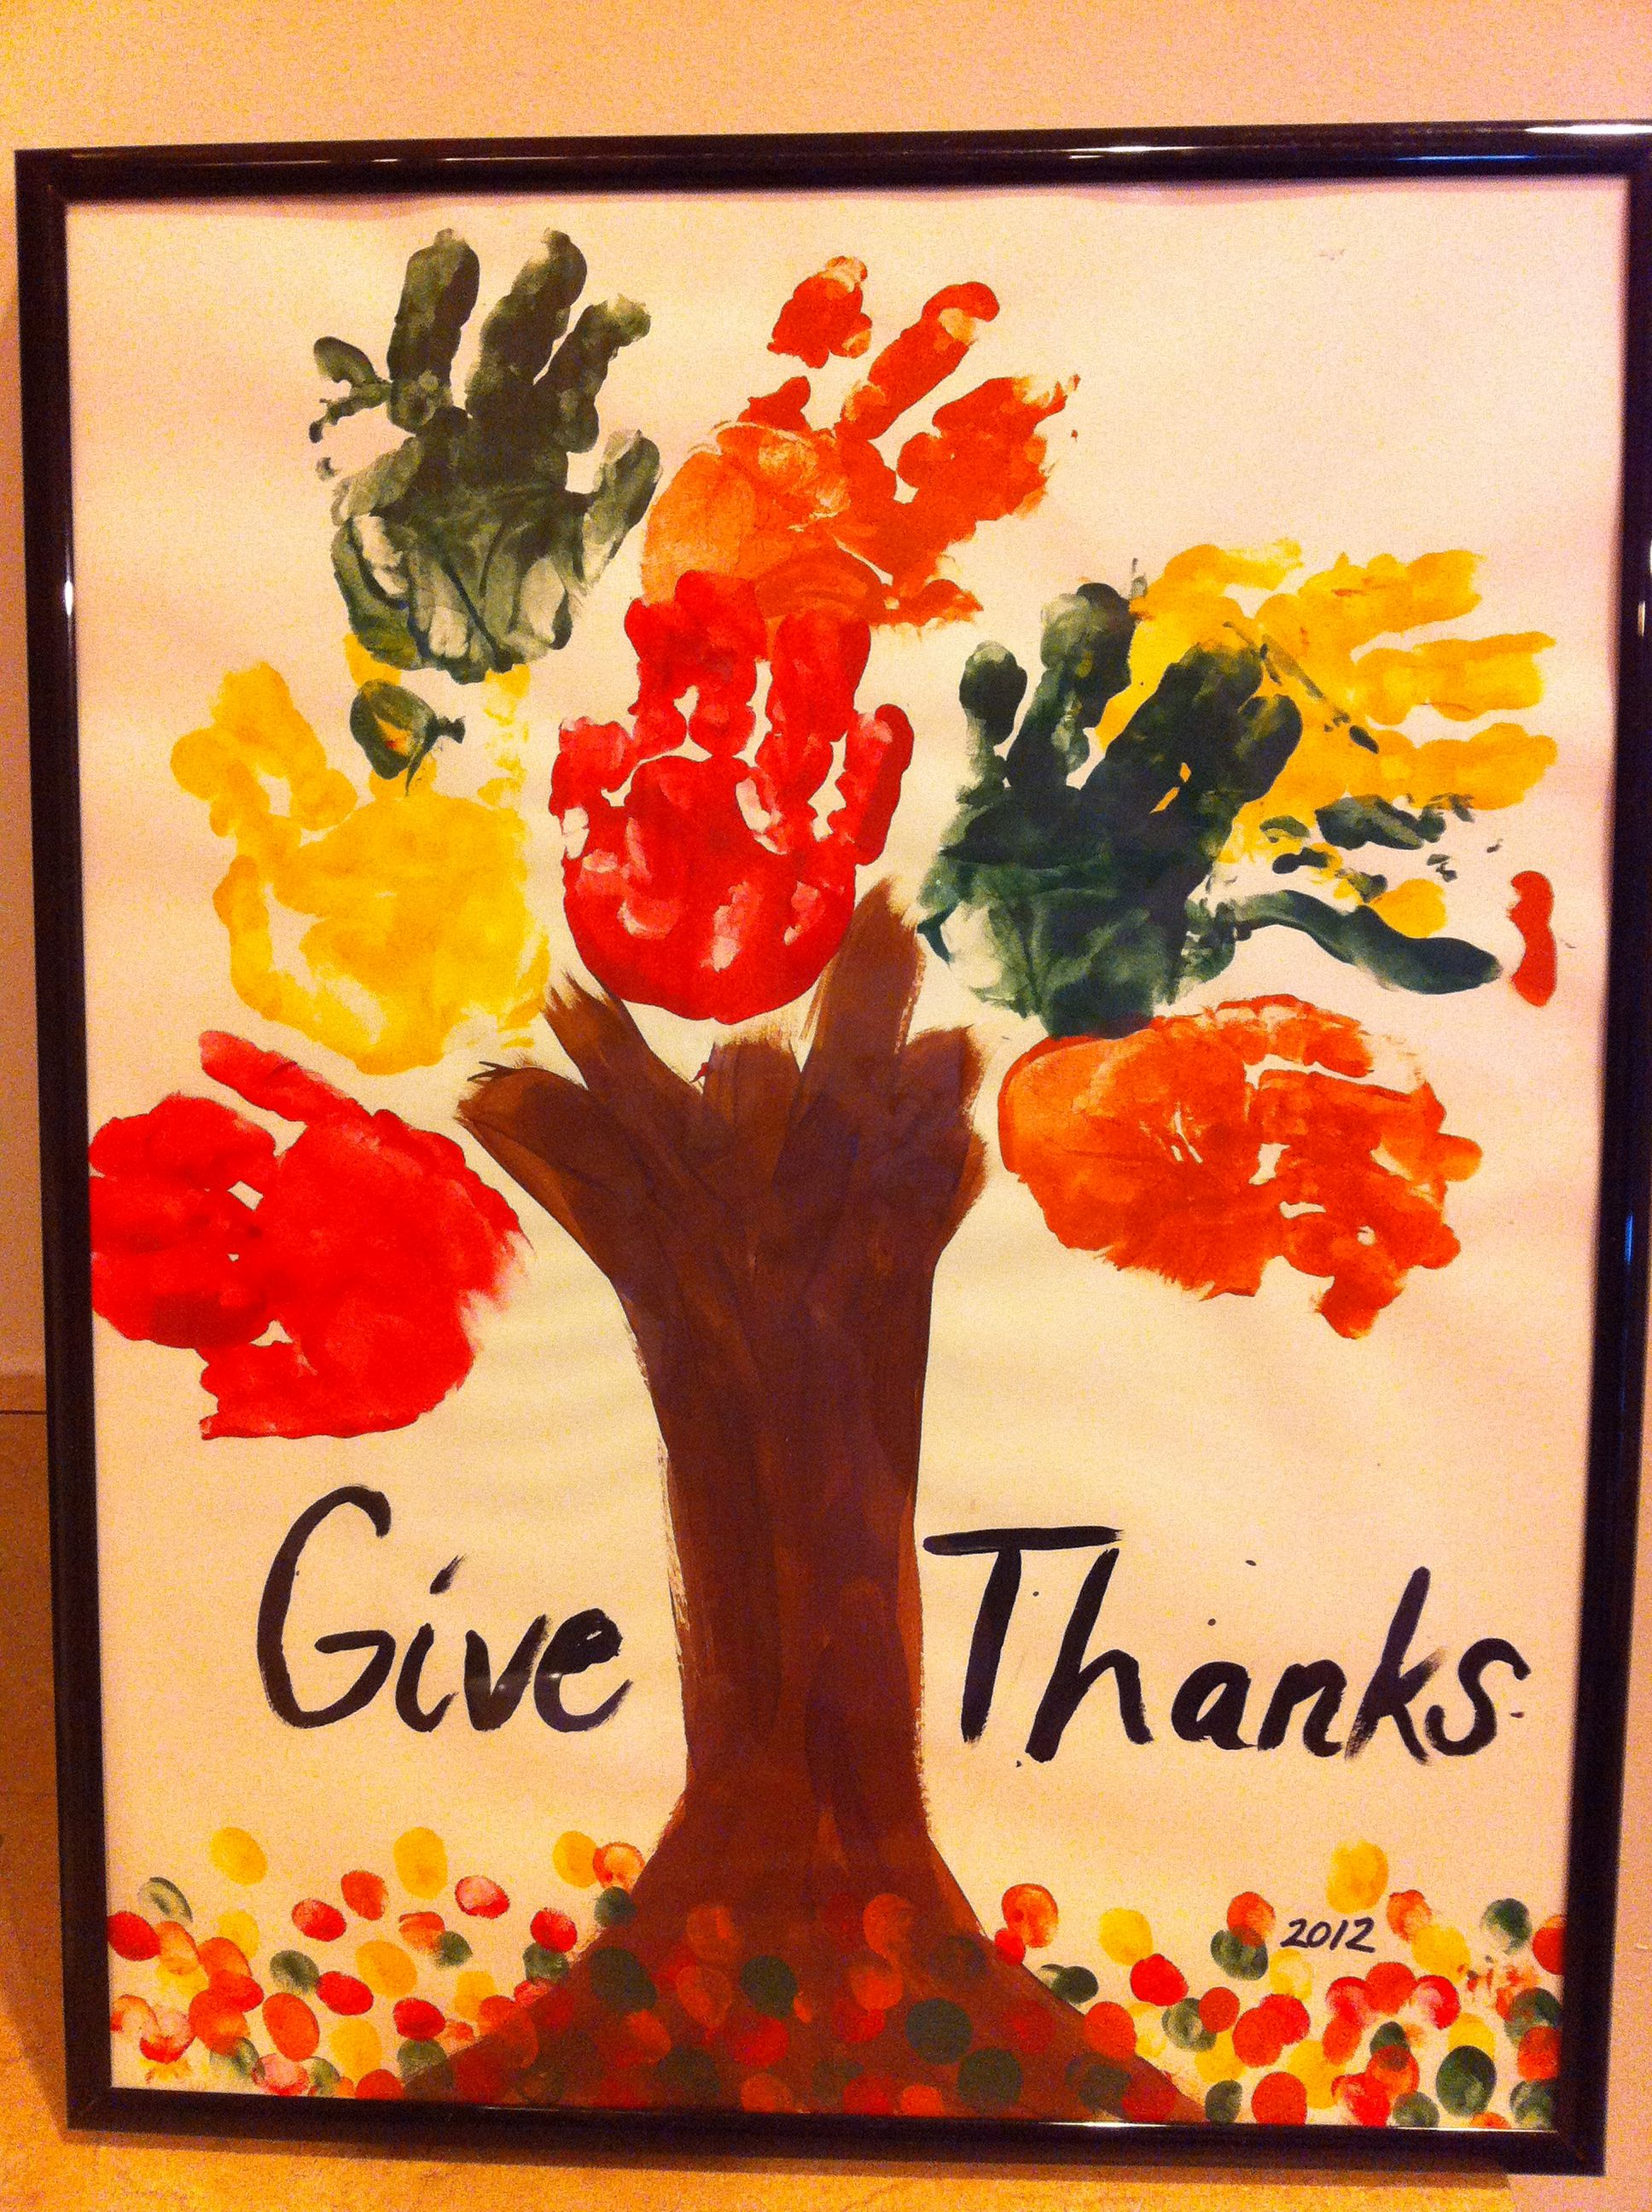 Pin By Molly Quinones On Christmas And Winter Stuff Diy Thanksgiving Crafts Thanksgiving Crafts For Kids Thanksgiving Art Projects